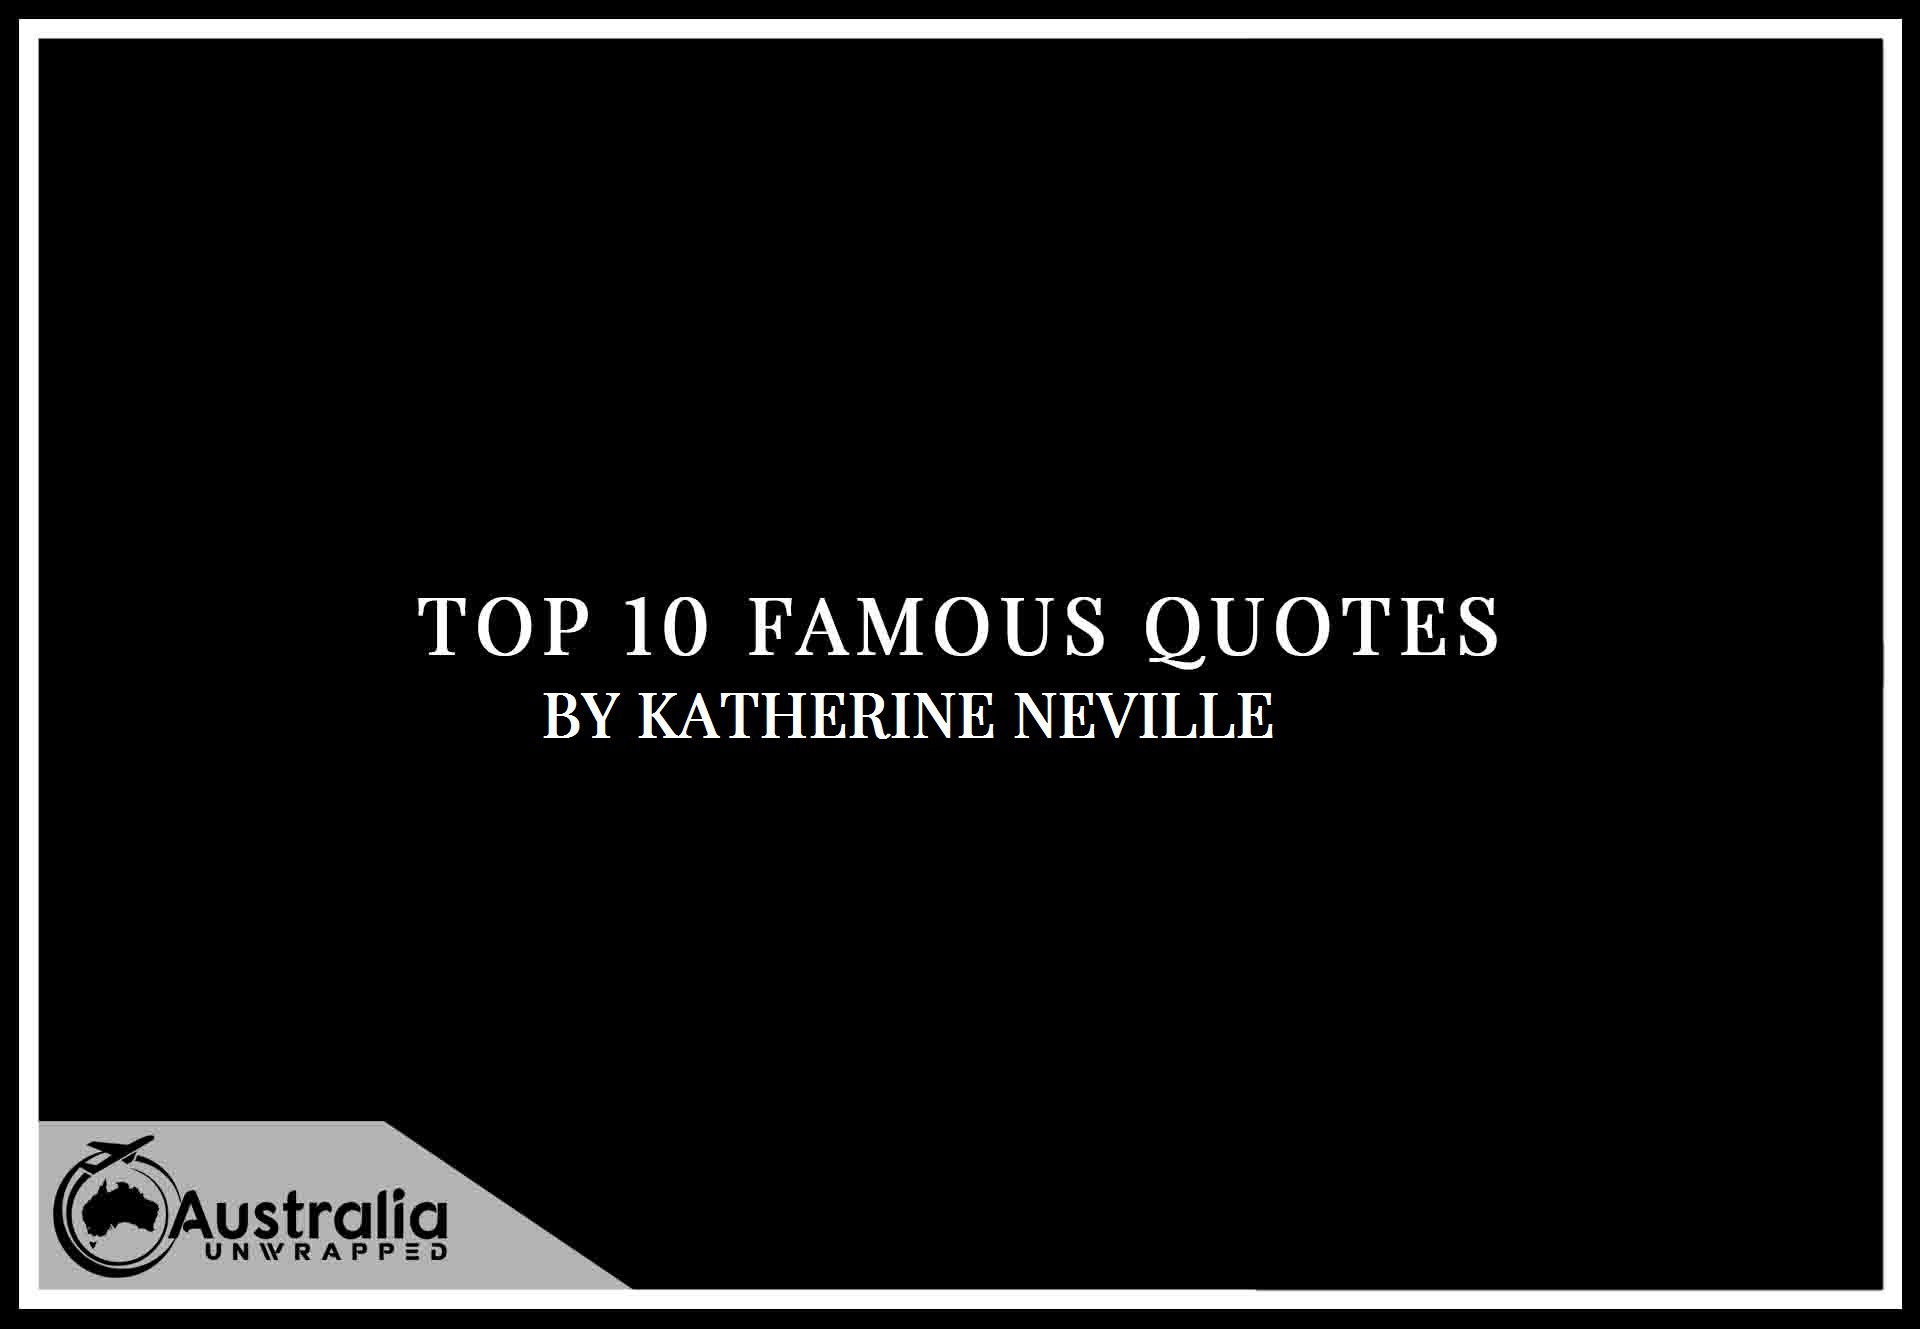 Katherine Neville's Top 10 Popular and Famous Quotes